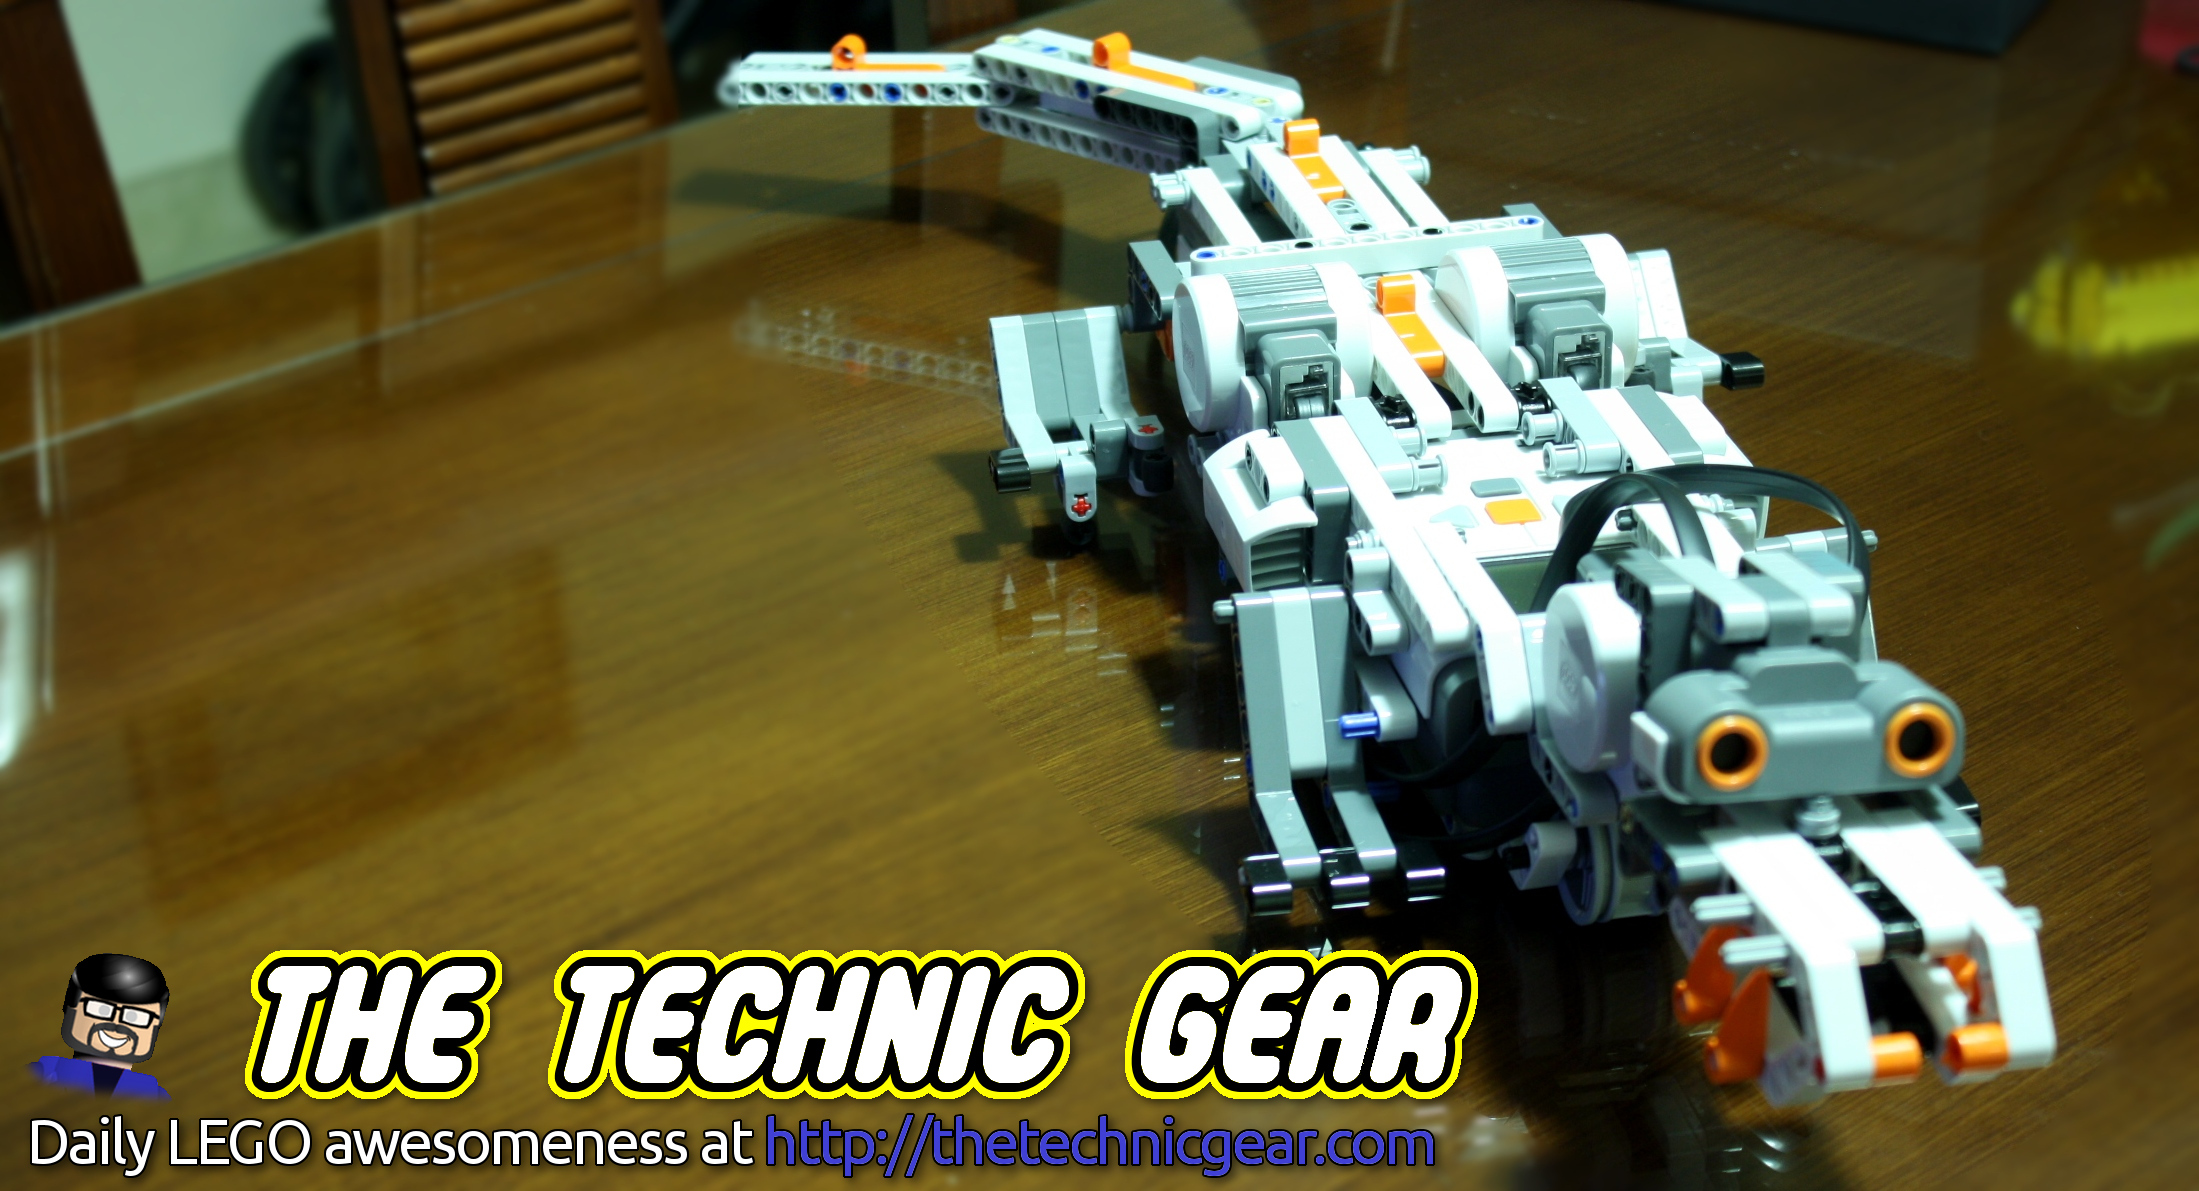 robogator your fearless lego mindstorms guardian lego reviews rh thetechnicgear com LEGO Mindstorms EV4 LEGO Mindstorms EV3